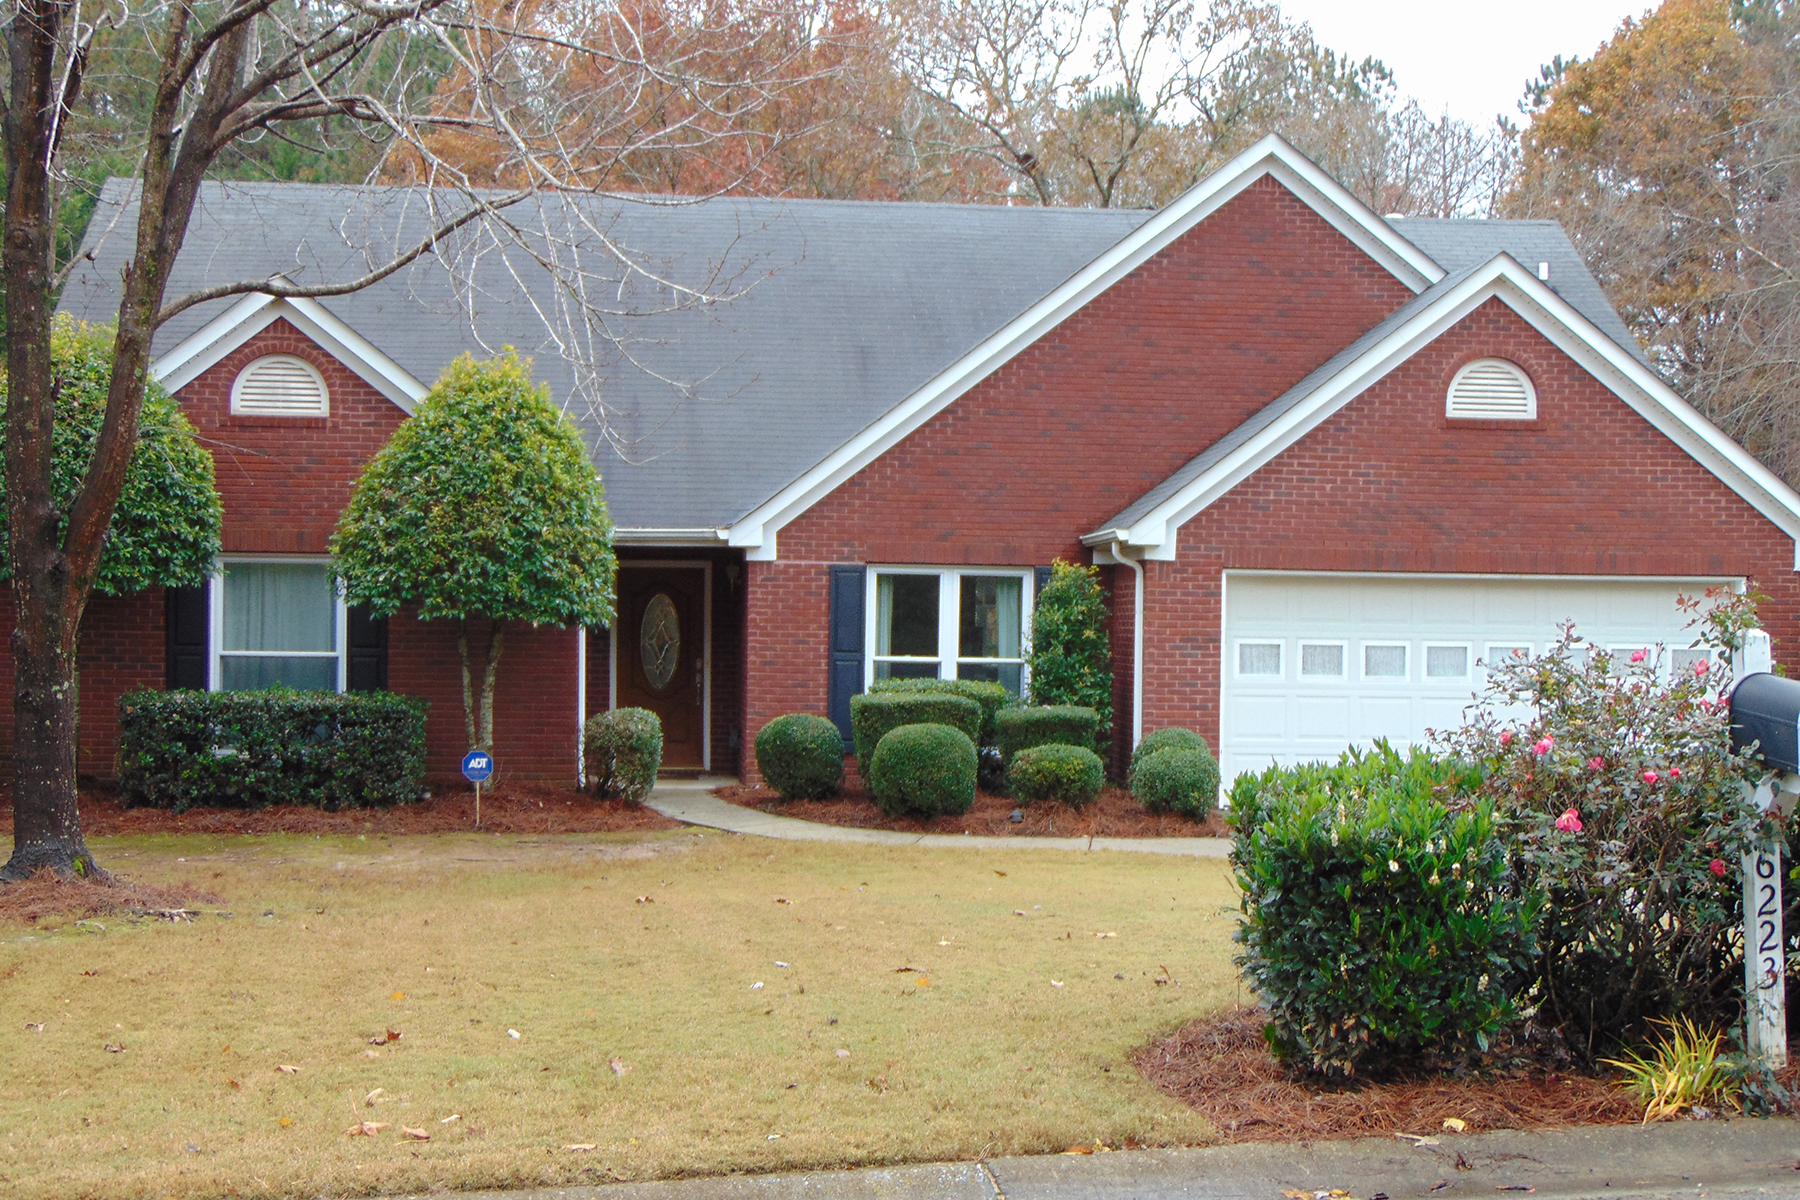 Single Family Home for Sale at Brick Ranch On Large Fenced Flat Lot 6223 Rock Port Dr Flowery Branch, Georgia 30542 United States